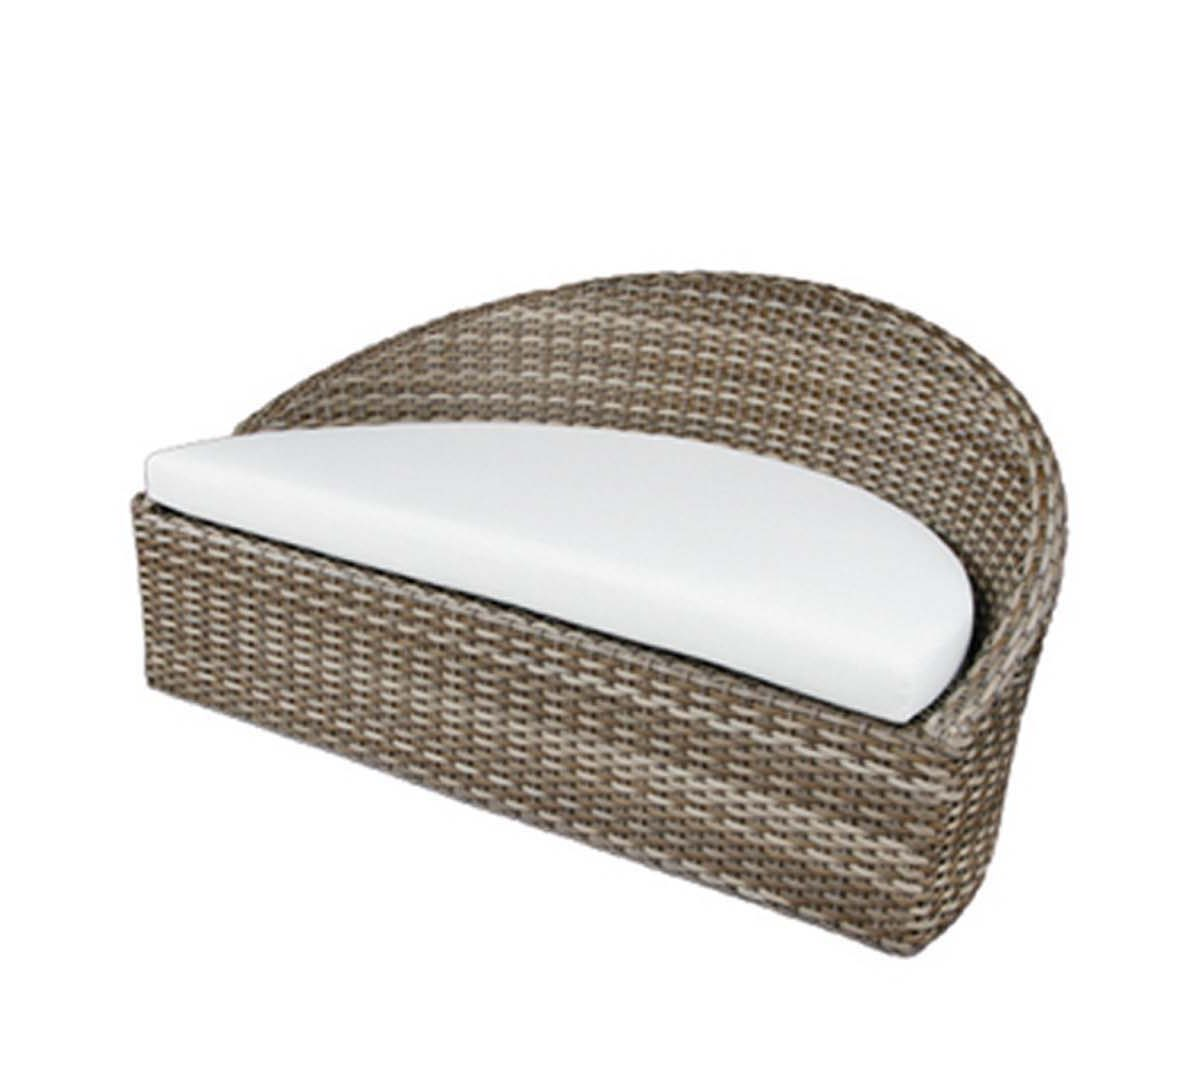 Outdoor Furniture Orlando: Ratana: Orlando Collection